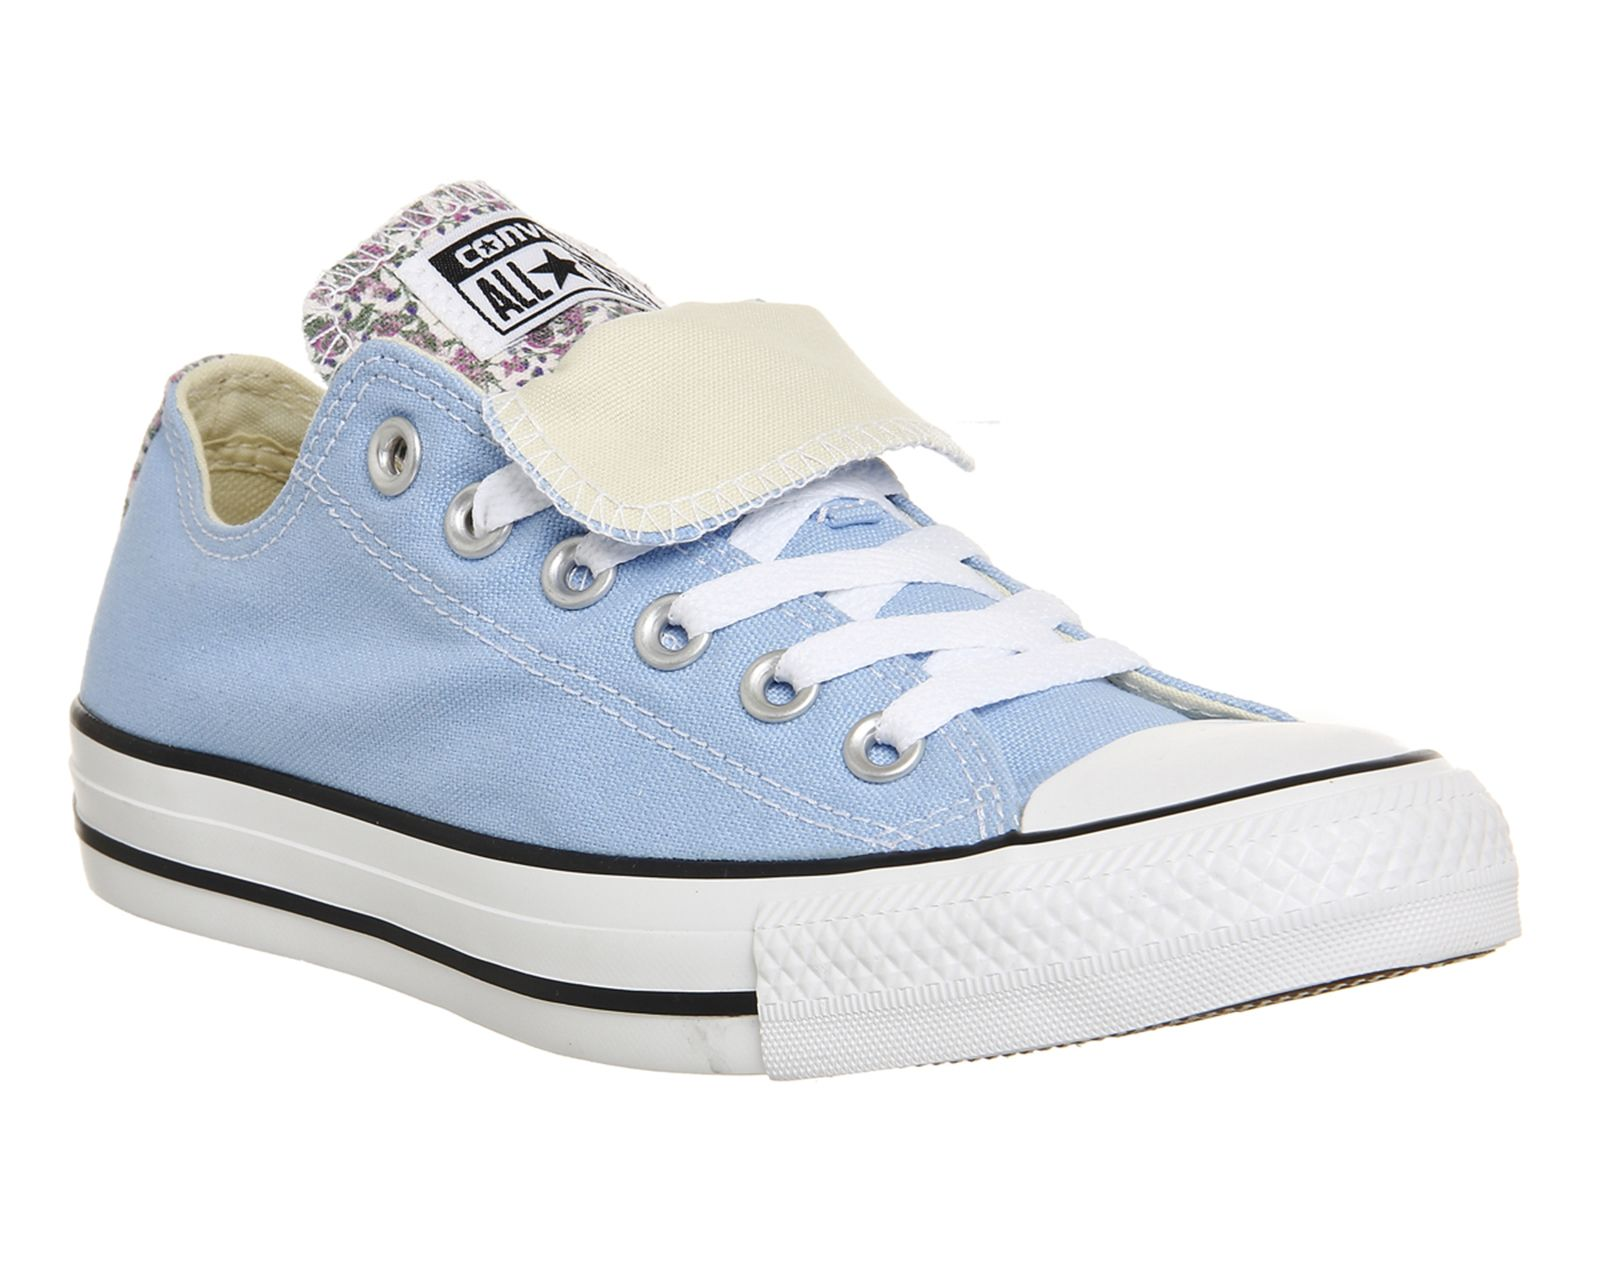 39c5e1eaff33ac Buy Blue Sky Mini Rose Converse Allstar Low Double Tongue from OFFICE.co.uk.